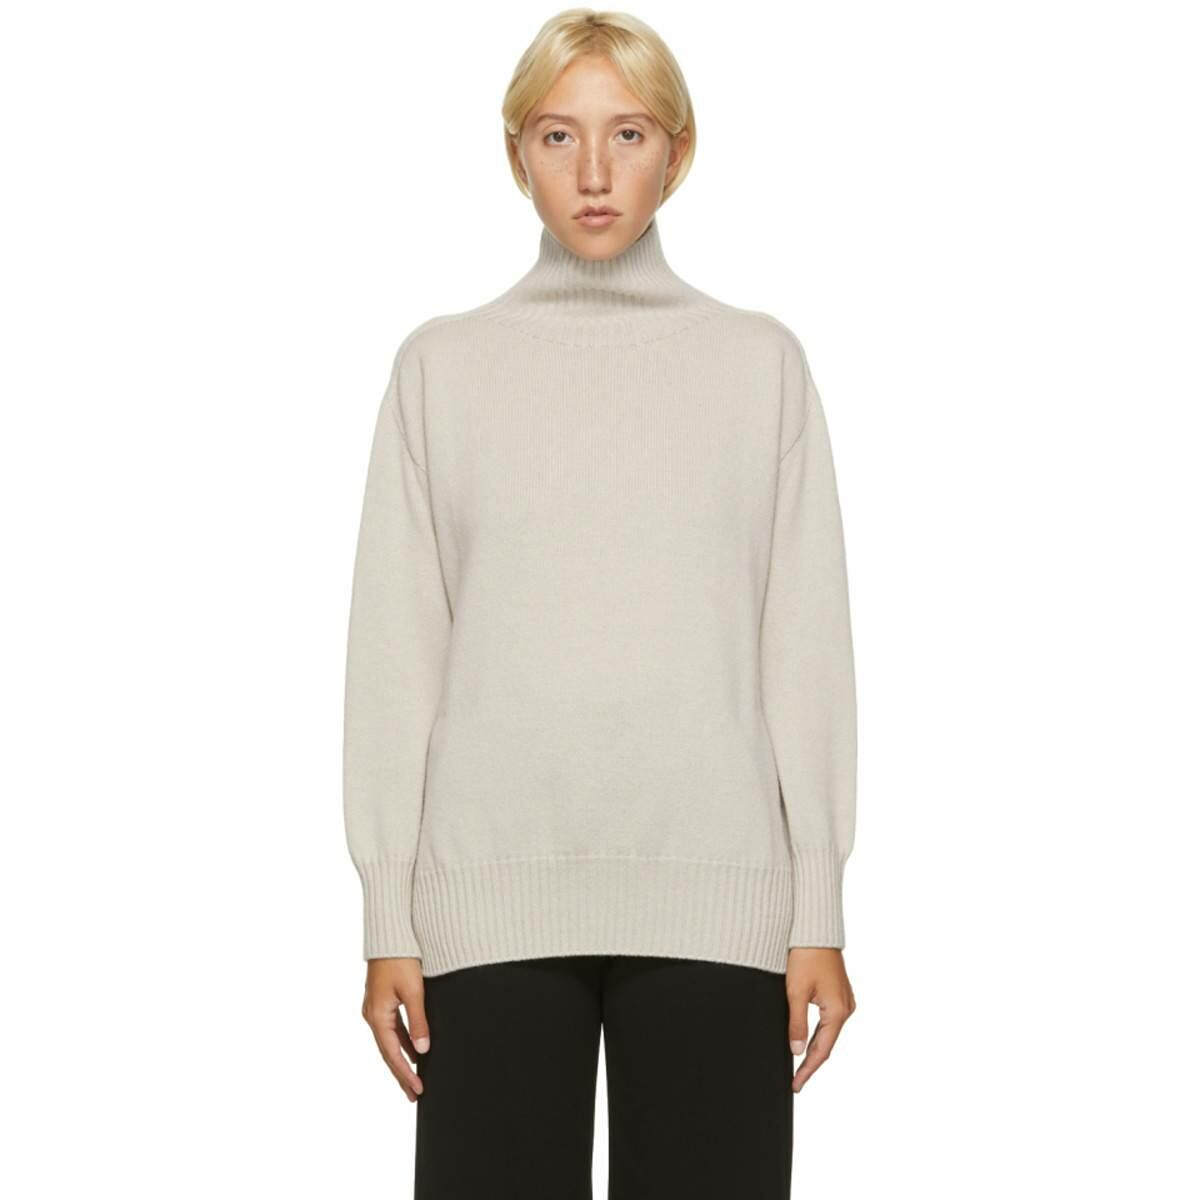 S Max Mara Beige Cashmere Gnomi Turtleneck Ssense USA WOMEN Women FASHION Womens KNITWEAR